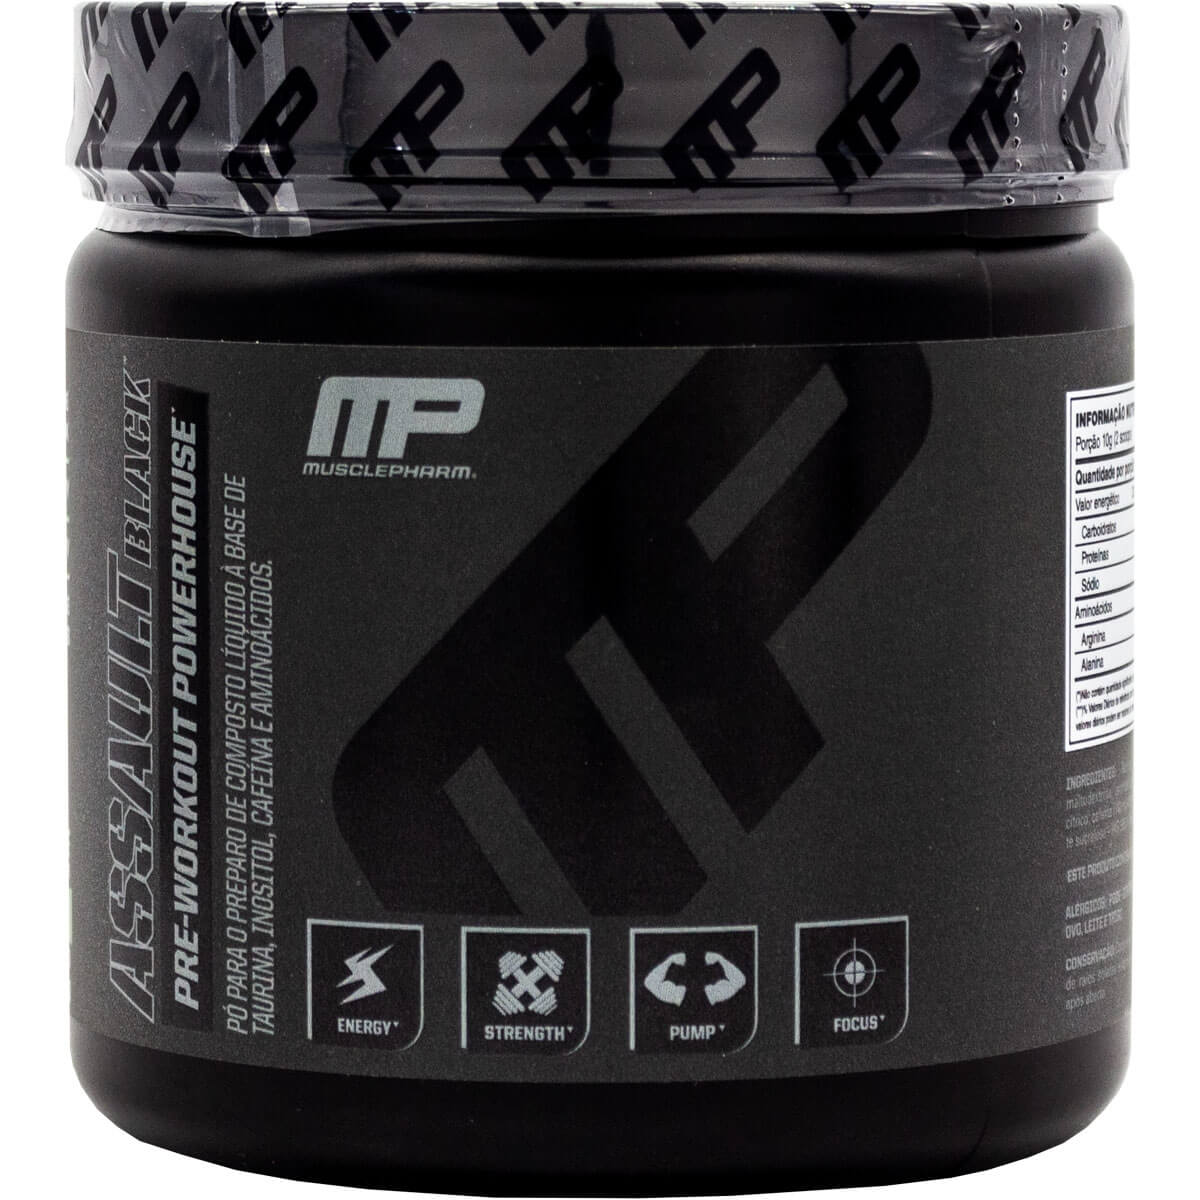 Assault Black Label Muscle Pharm - 30 doses